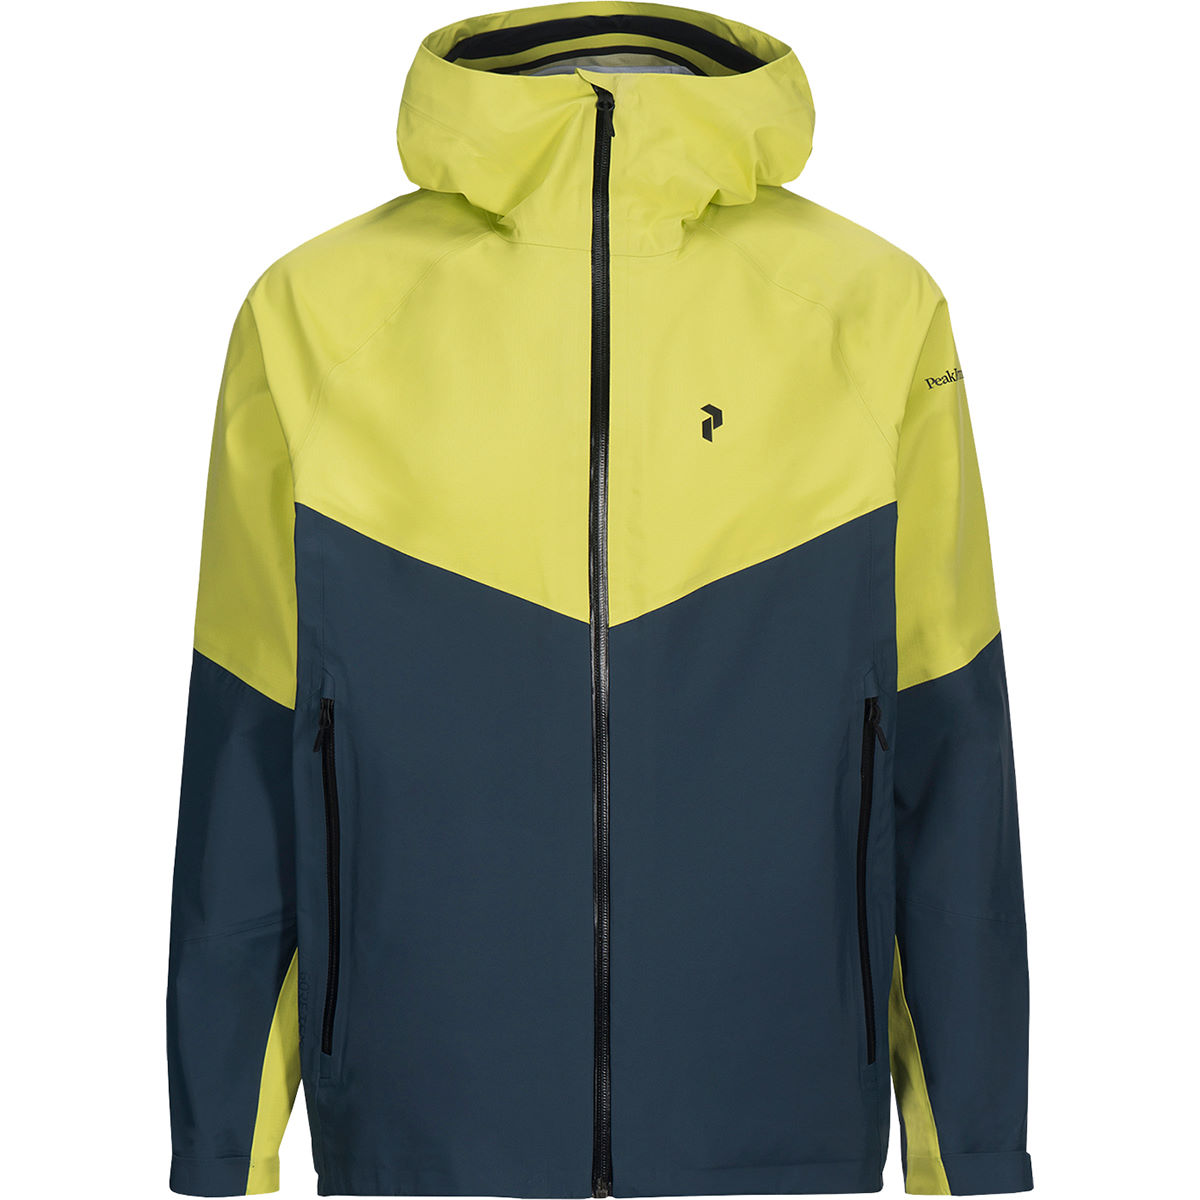 Peak Performance Limit Jacket   Jackets